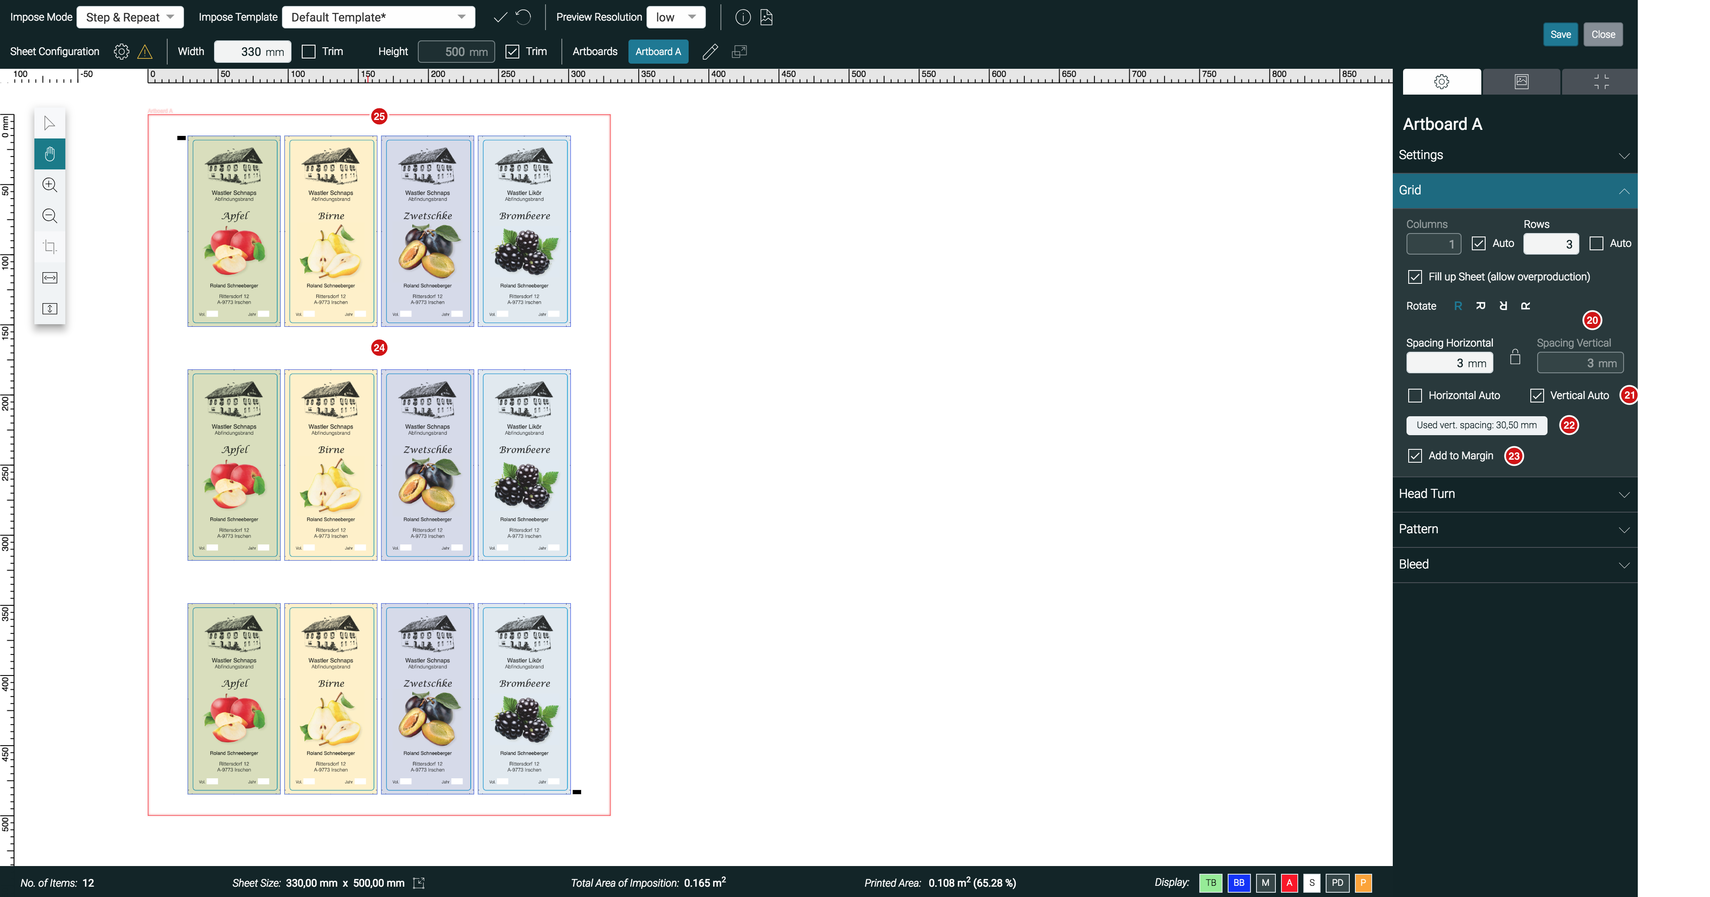 Impose Editor Vertical and Horizontal Auto feature 1.7.2